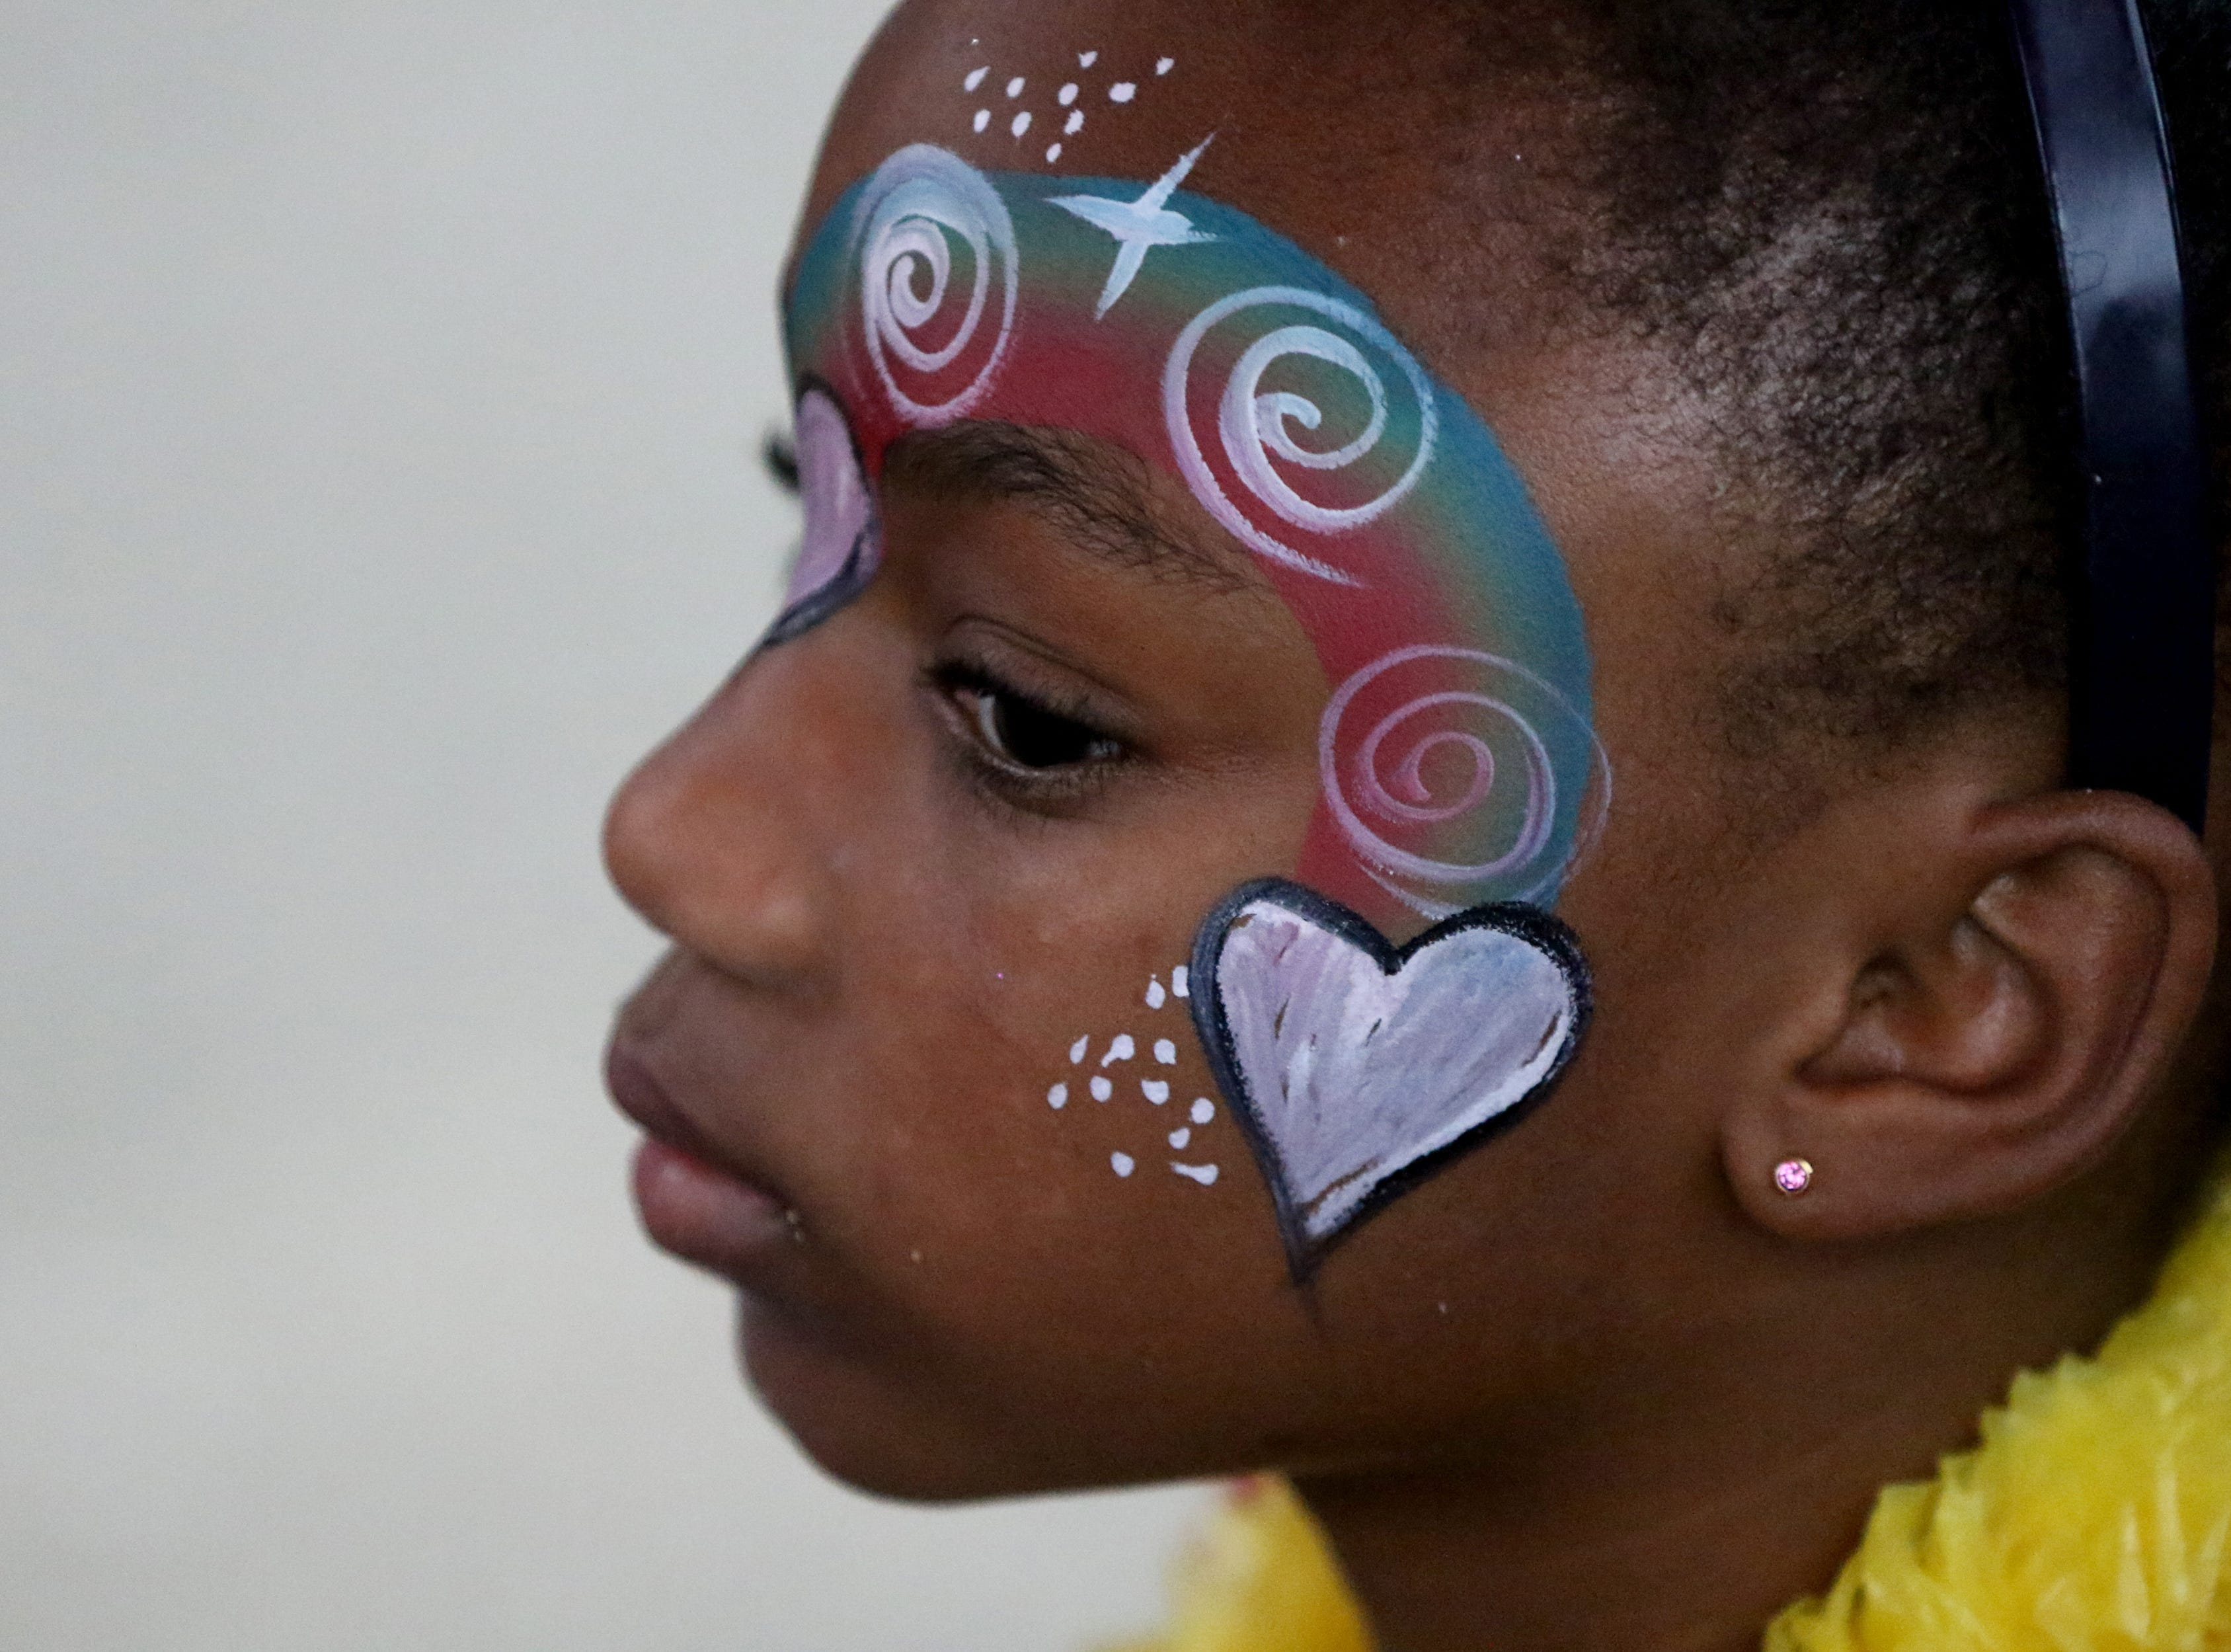 Justice Samuels, 7, is shown on Hamilton Ave. in Paterson after getting her face painted on National Night Out.  Tuesday, August 7, 2018